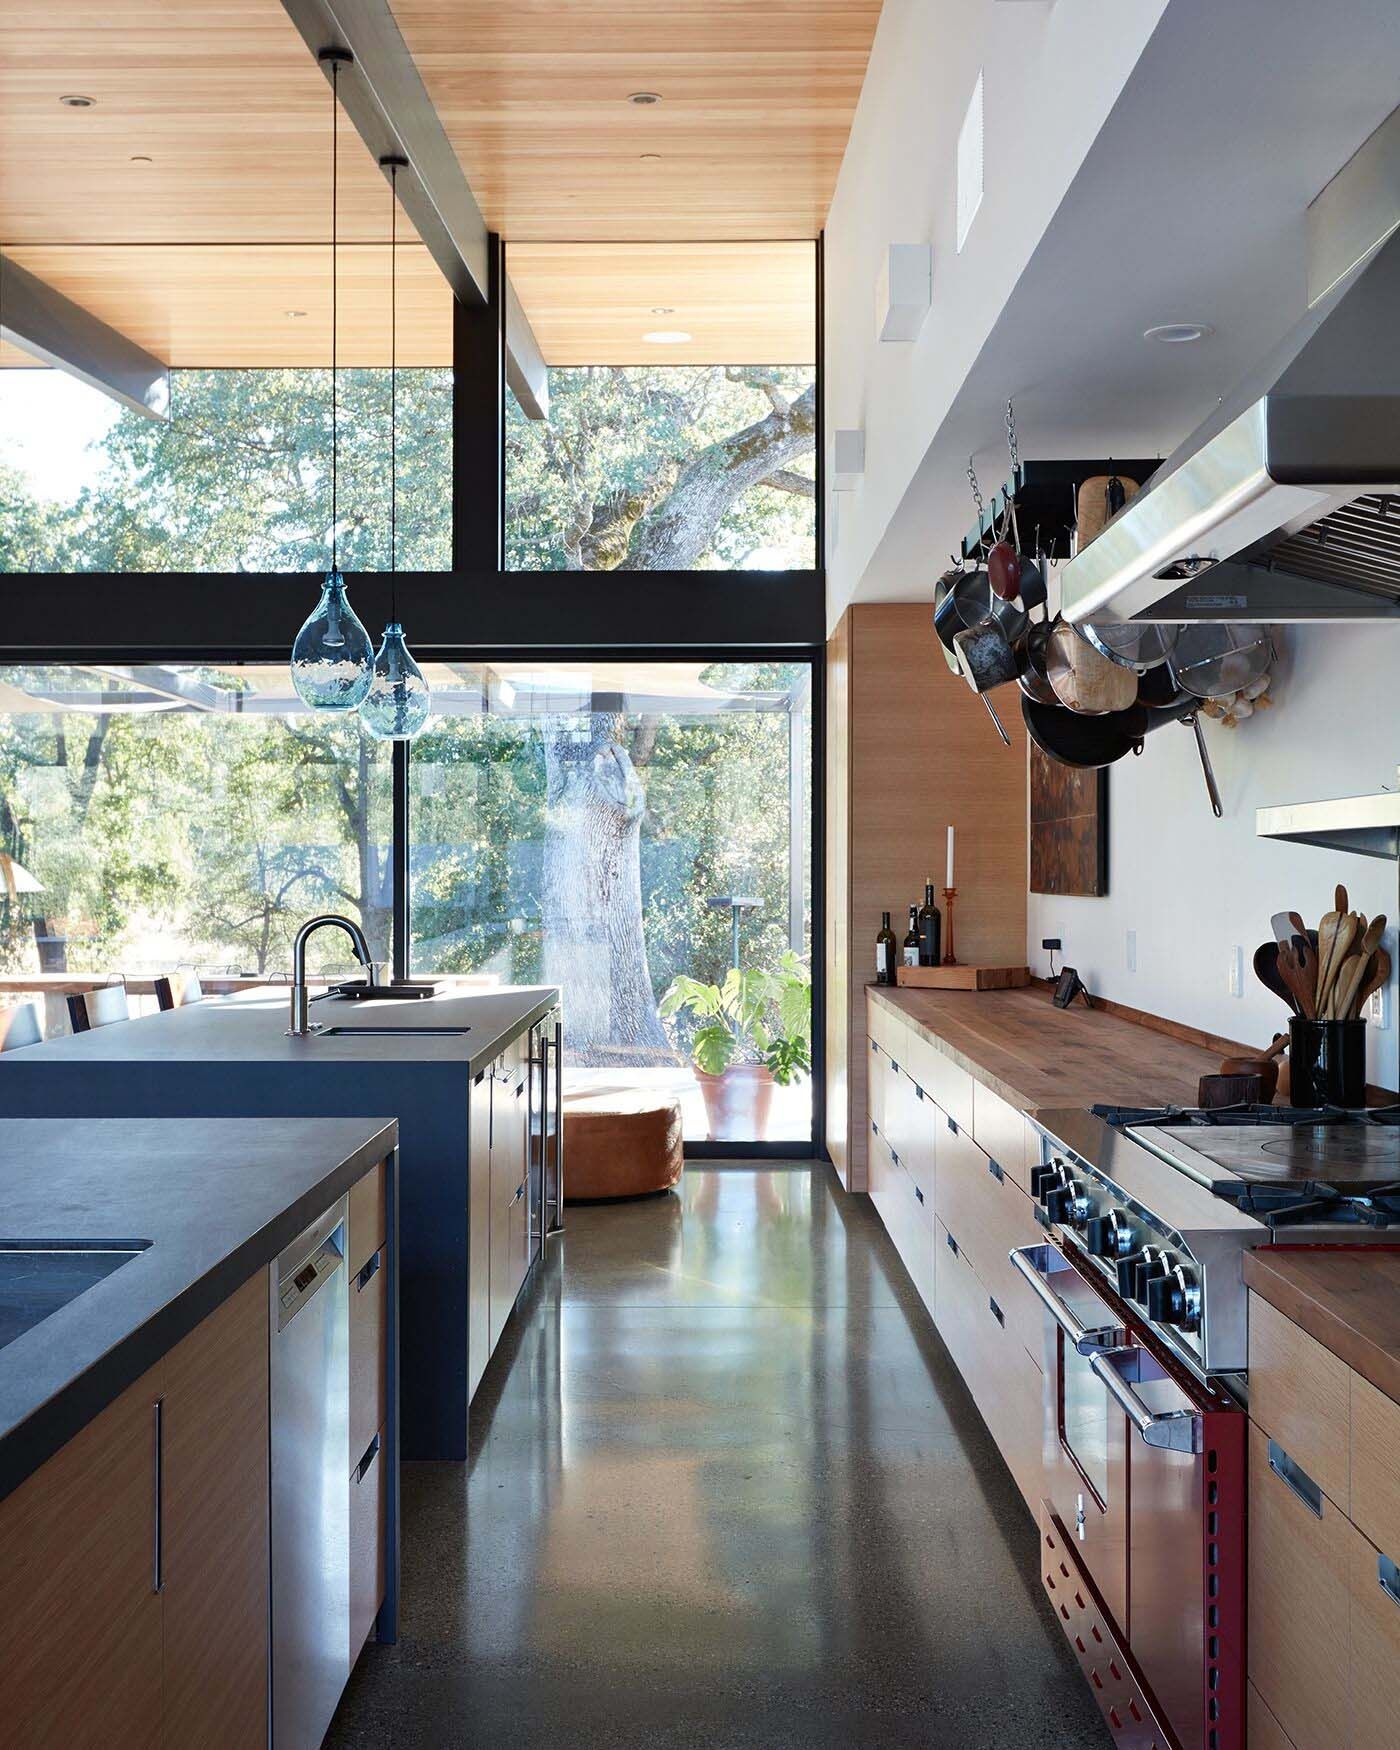 A modern California dwelling with surprising interior warmth